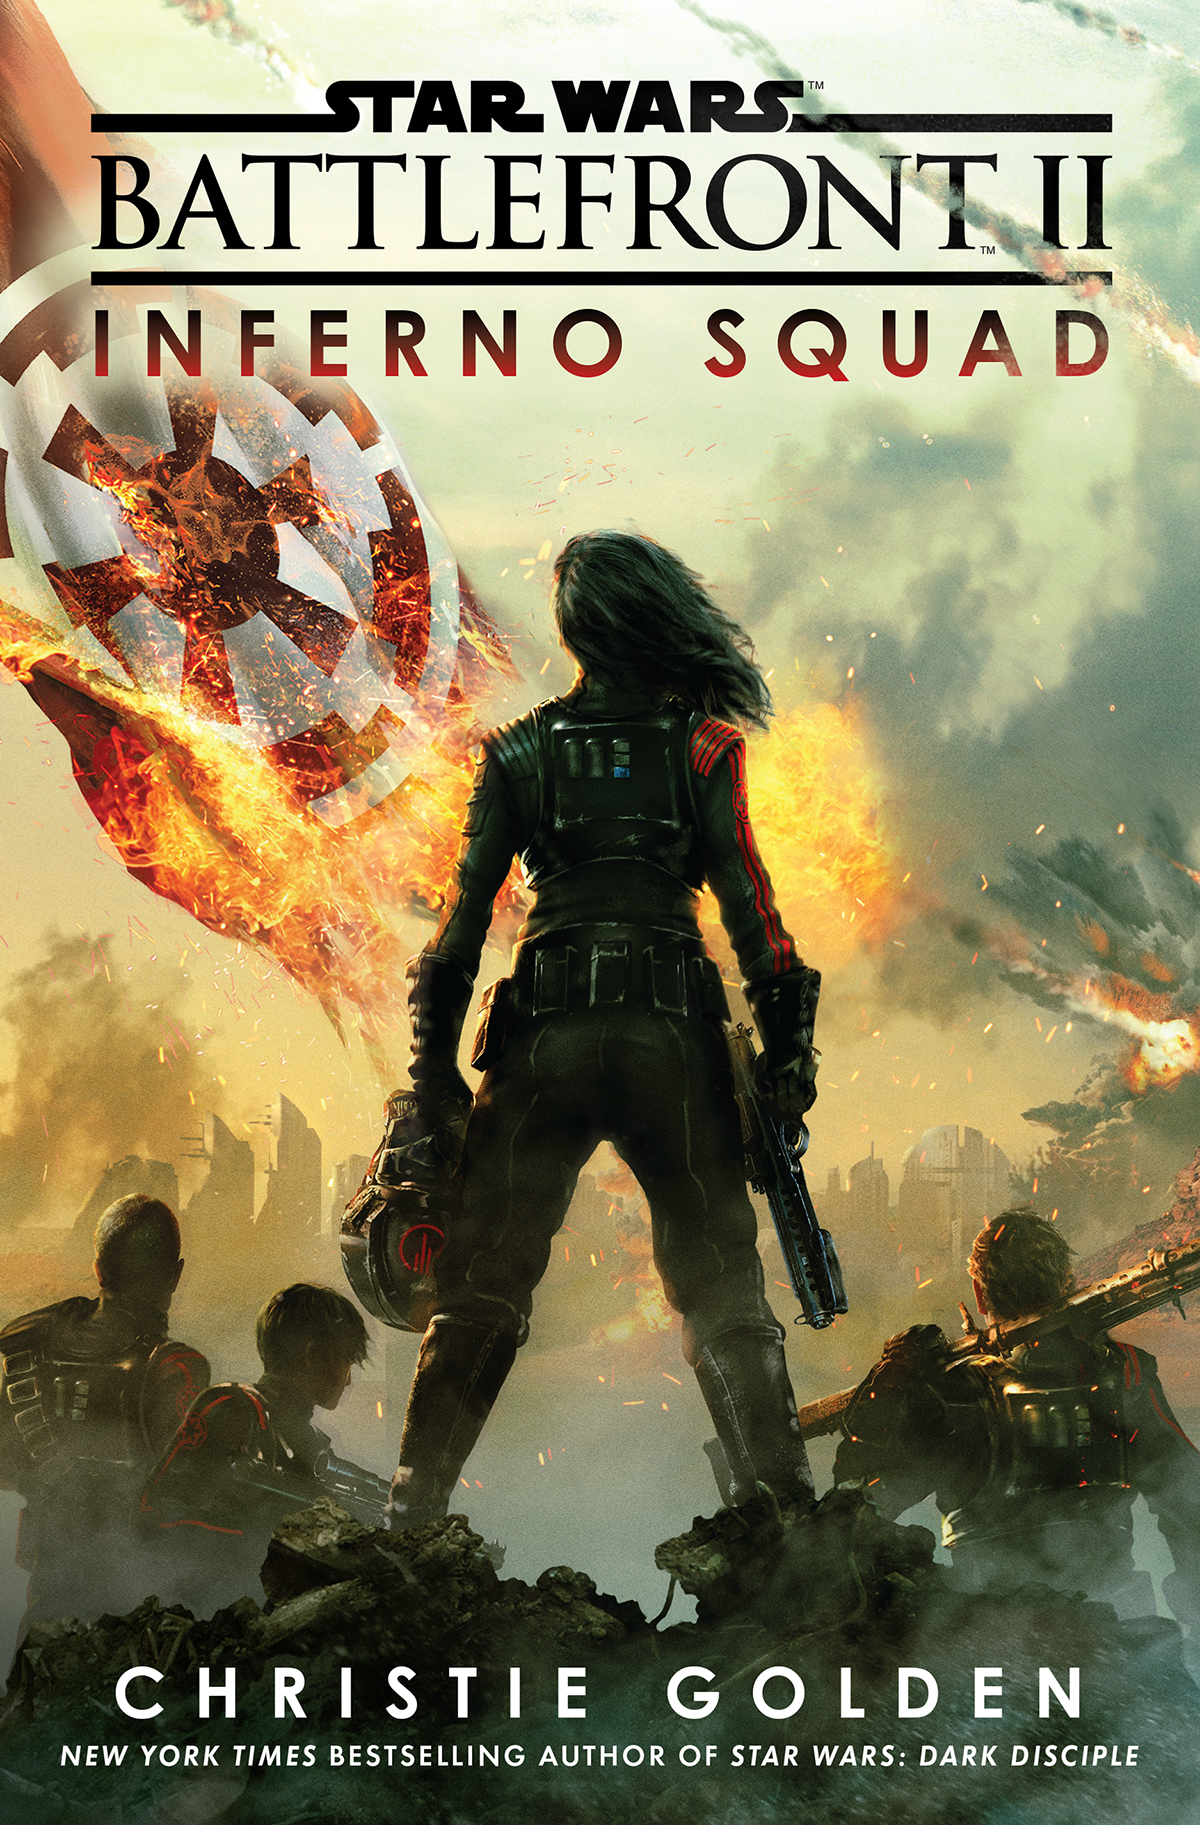 star wars battlefront Inferno Squad book cover Two Dots Lucasfilm penguin random house cover Dark side